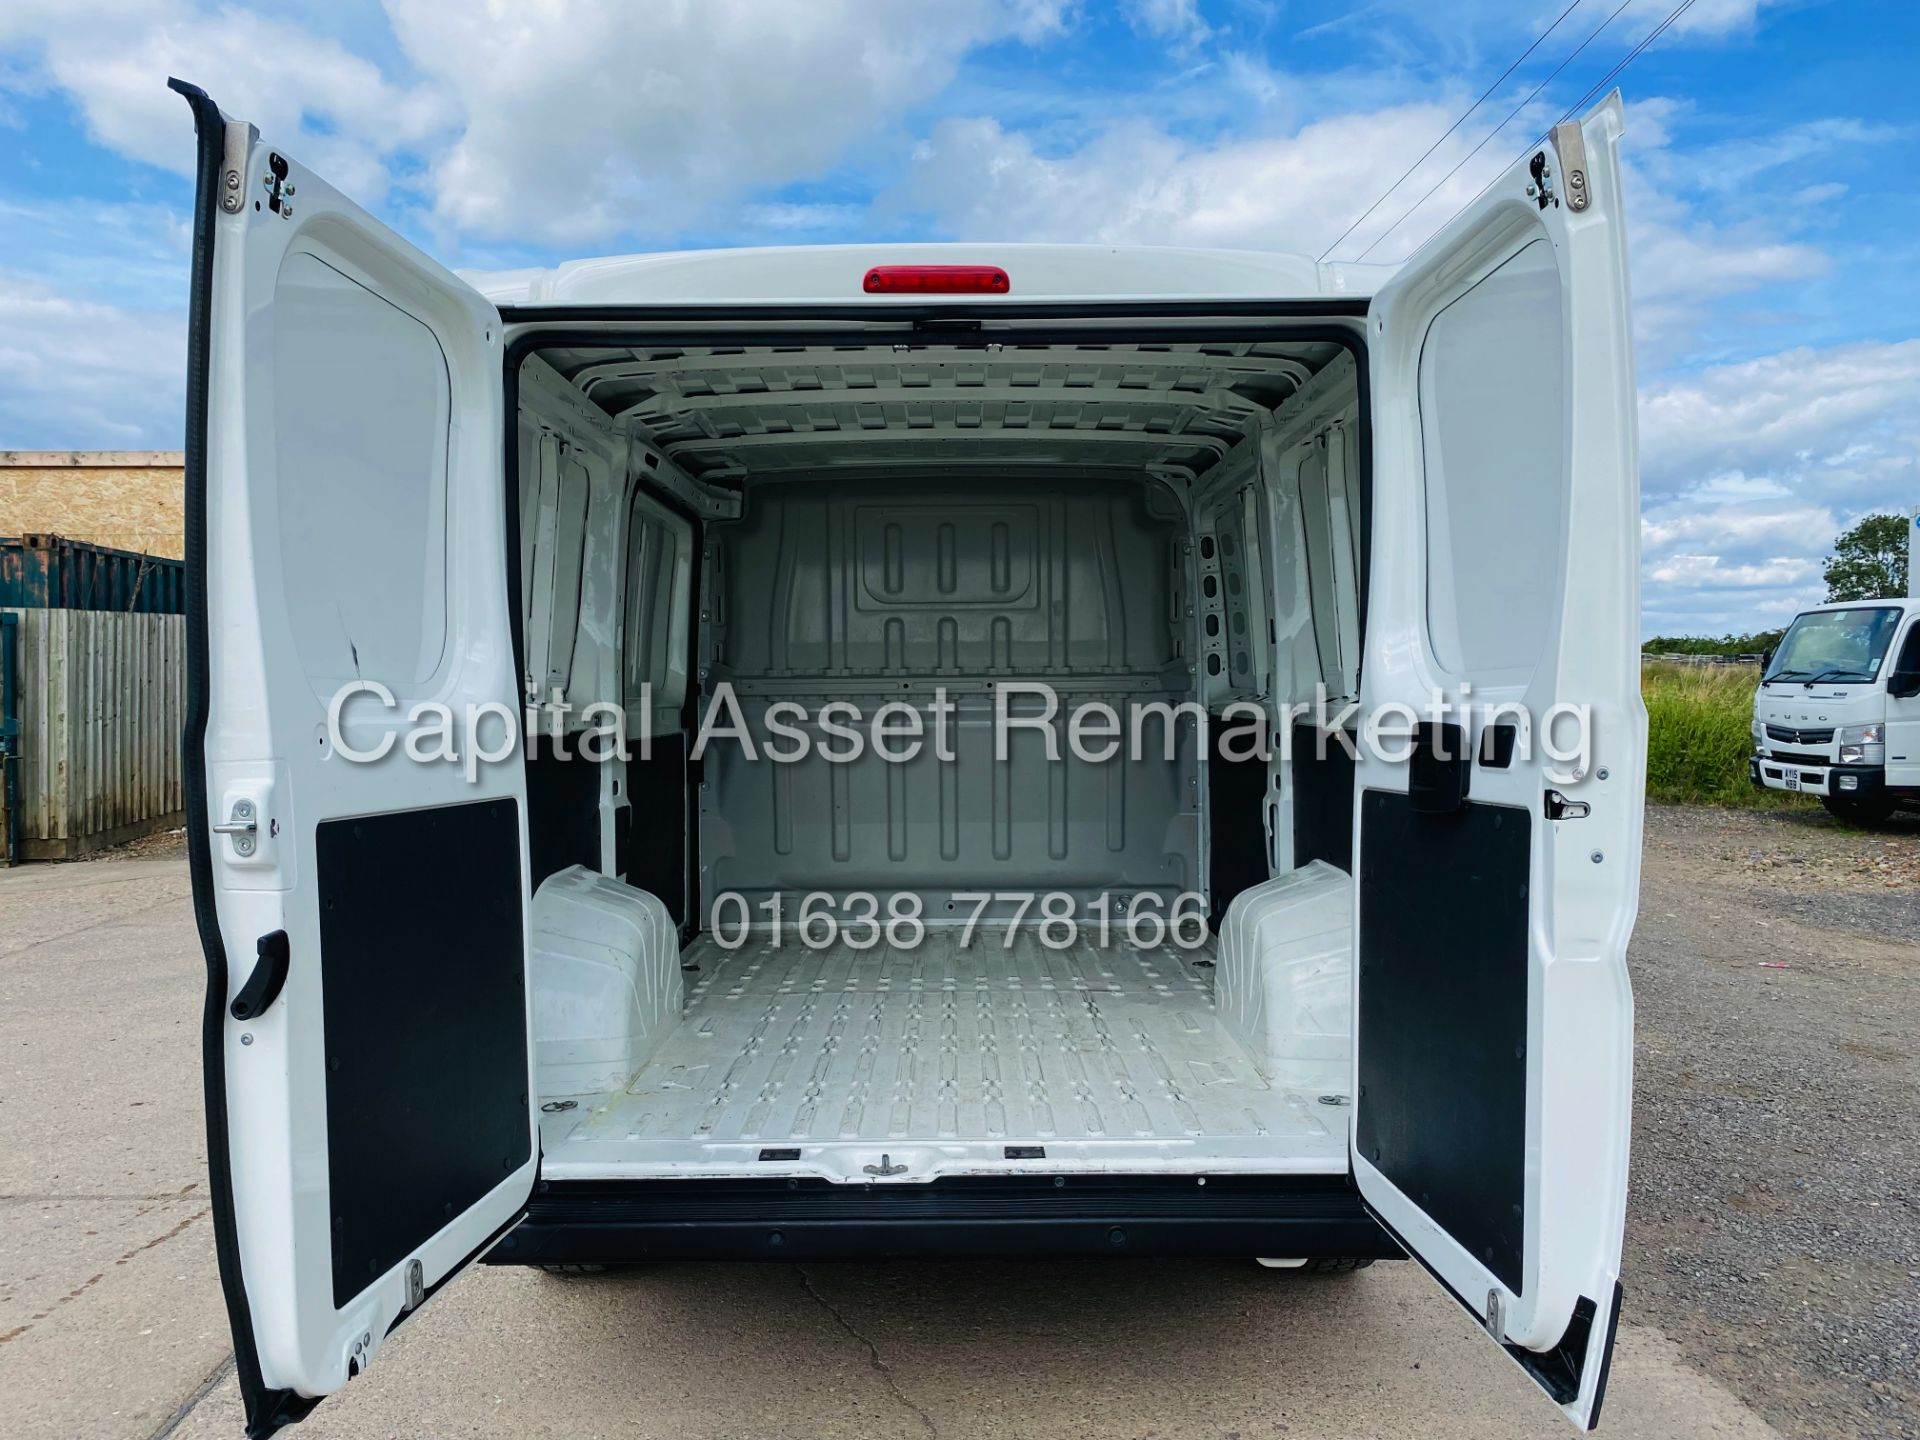 """ON SALE CITROEN RELAY 2.0 BLUE-HDI """"ENTERPRISE"""" L1H1 (2019 MODEL) AIR CON 6882 MILES ON THE CLOCK - Image 28 of 28"""